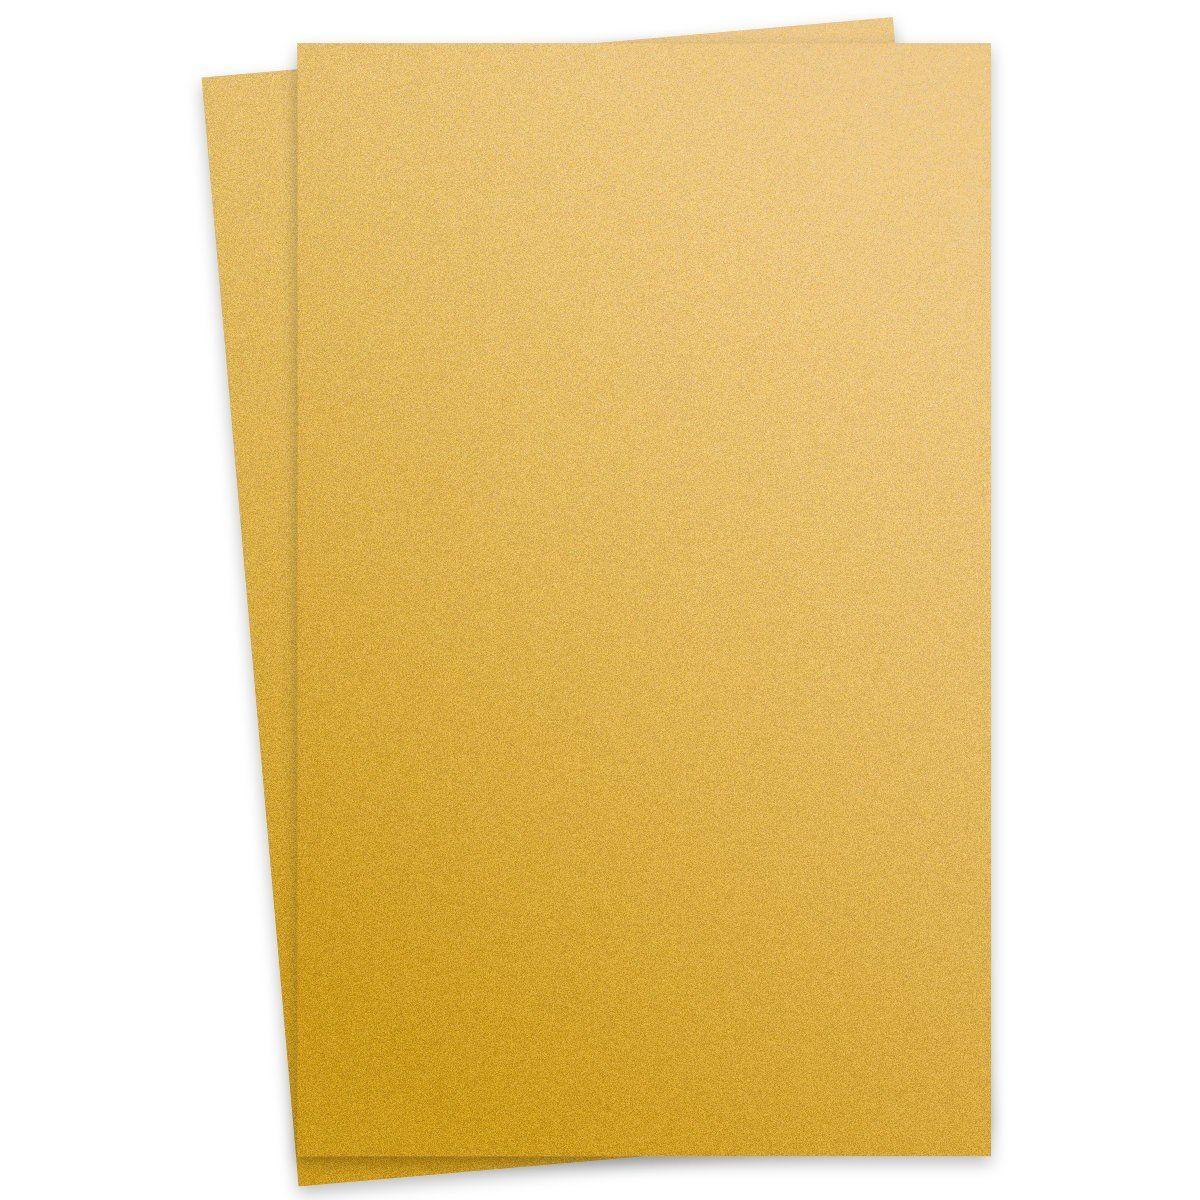 Curious Metallic Super Gold 11x17 Paper 32 80lb Text 200 Pk In 2020 Cardstock Paper Gold Paper Paper